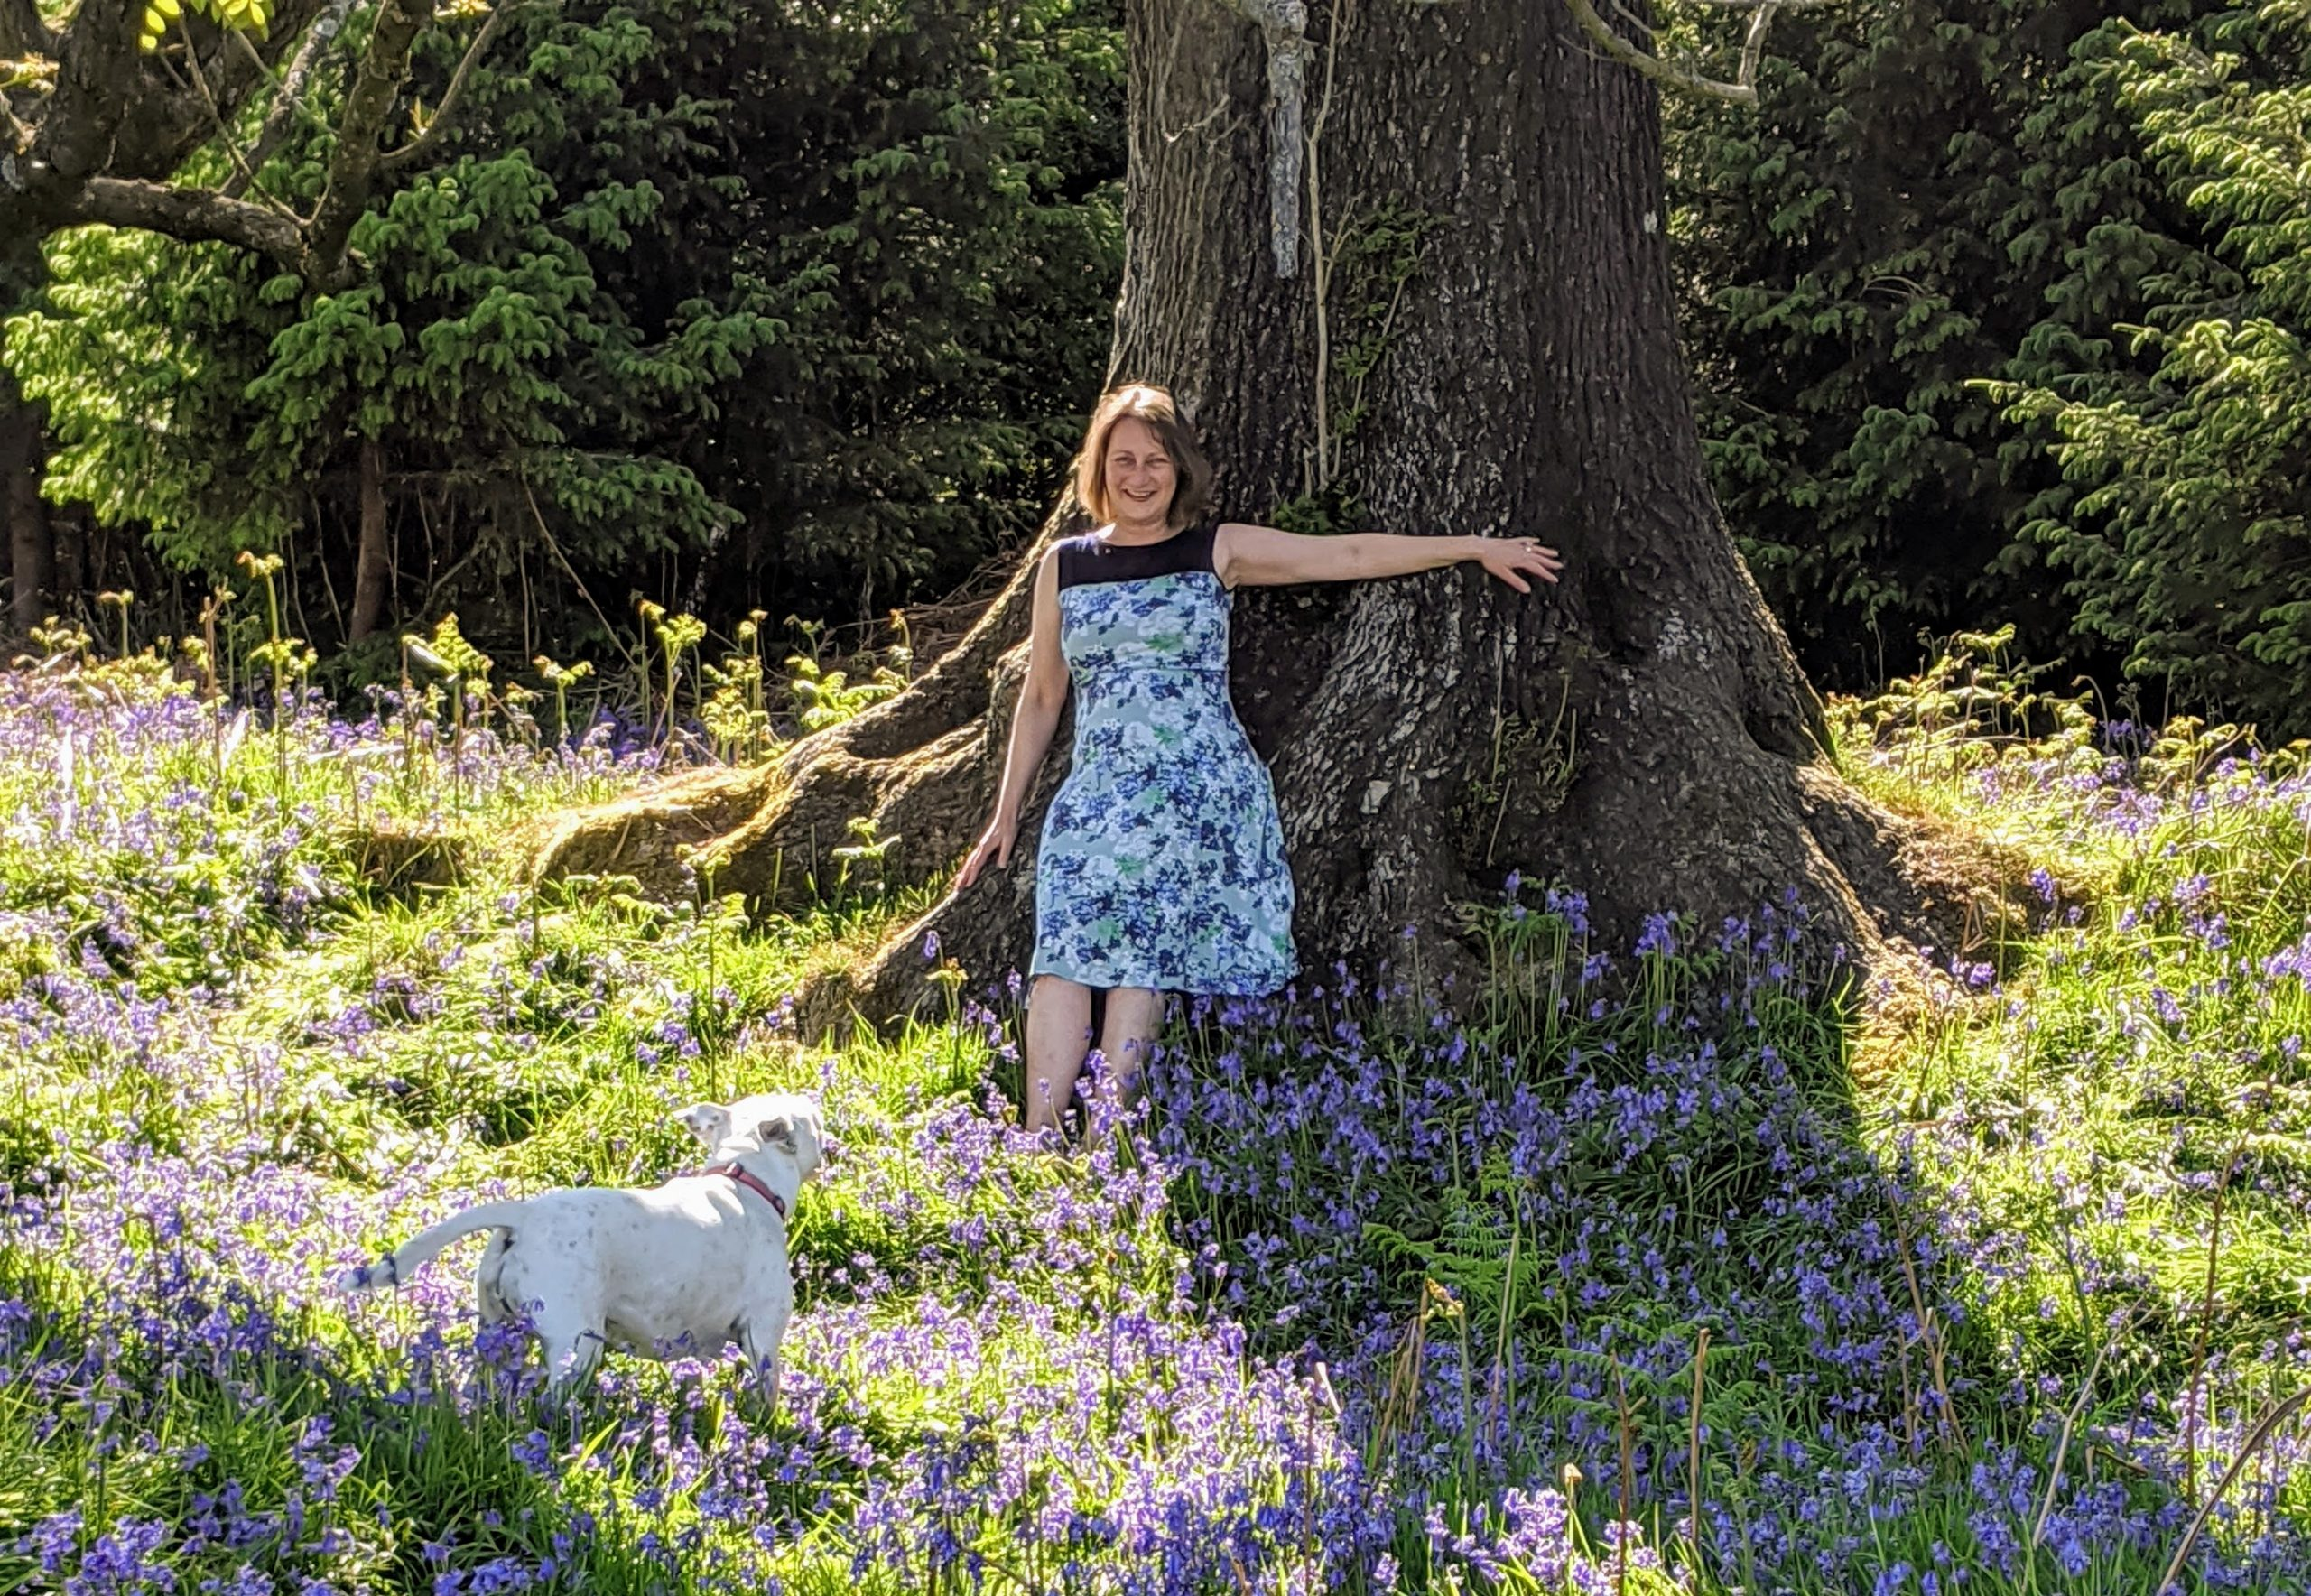 Jenny Bracelin leaning on a tree surrounding by bluebells